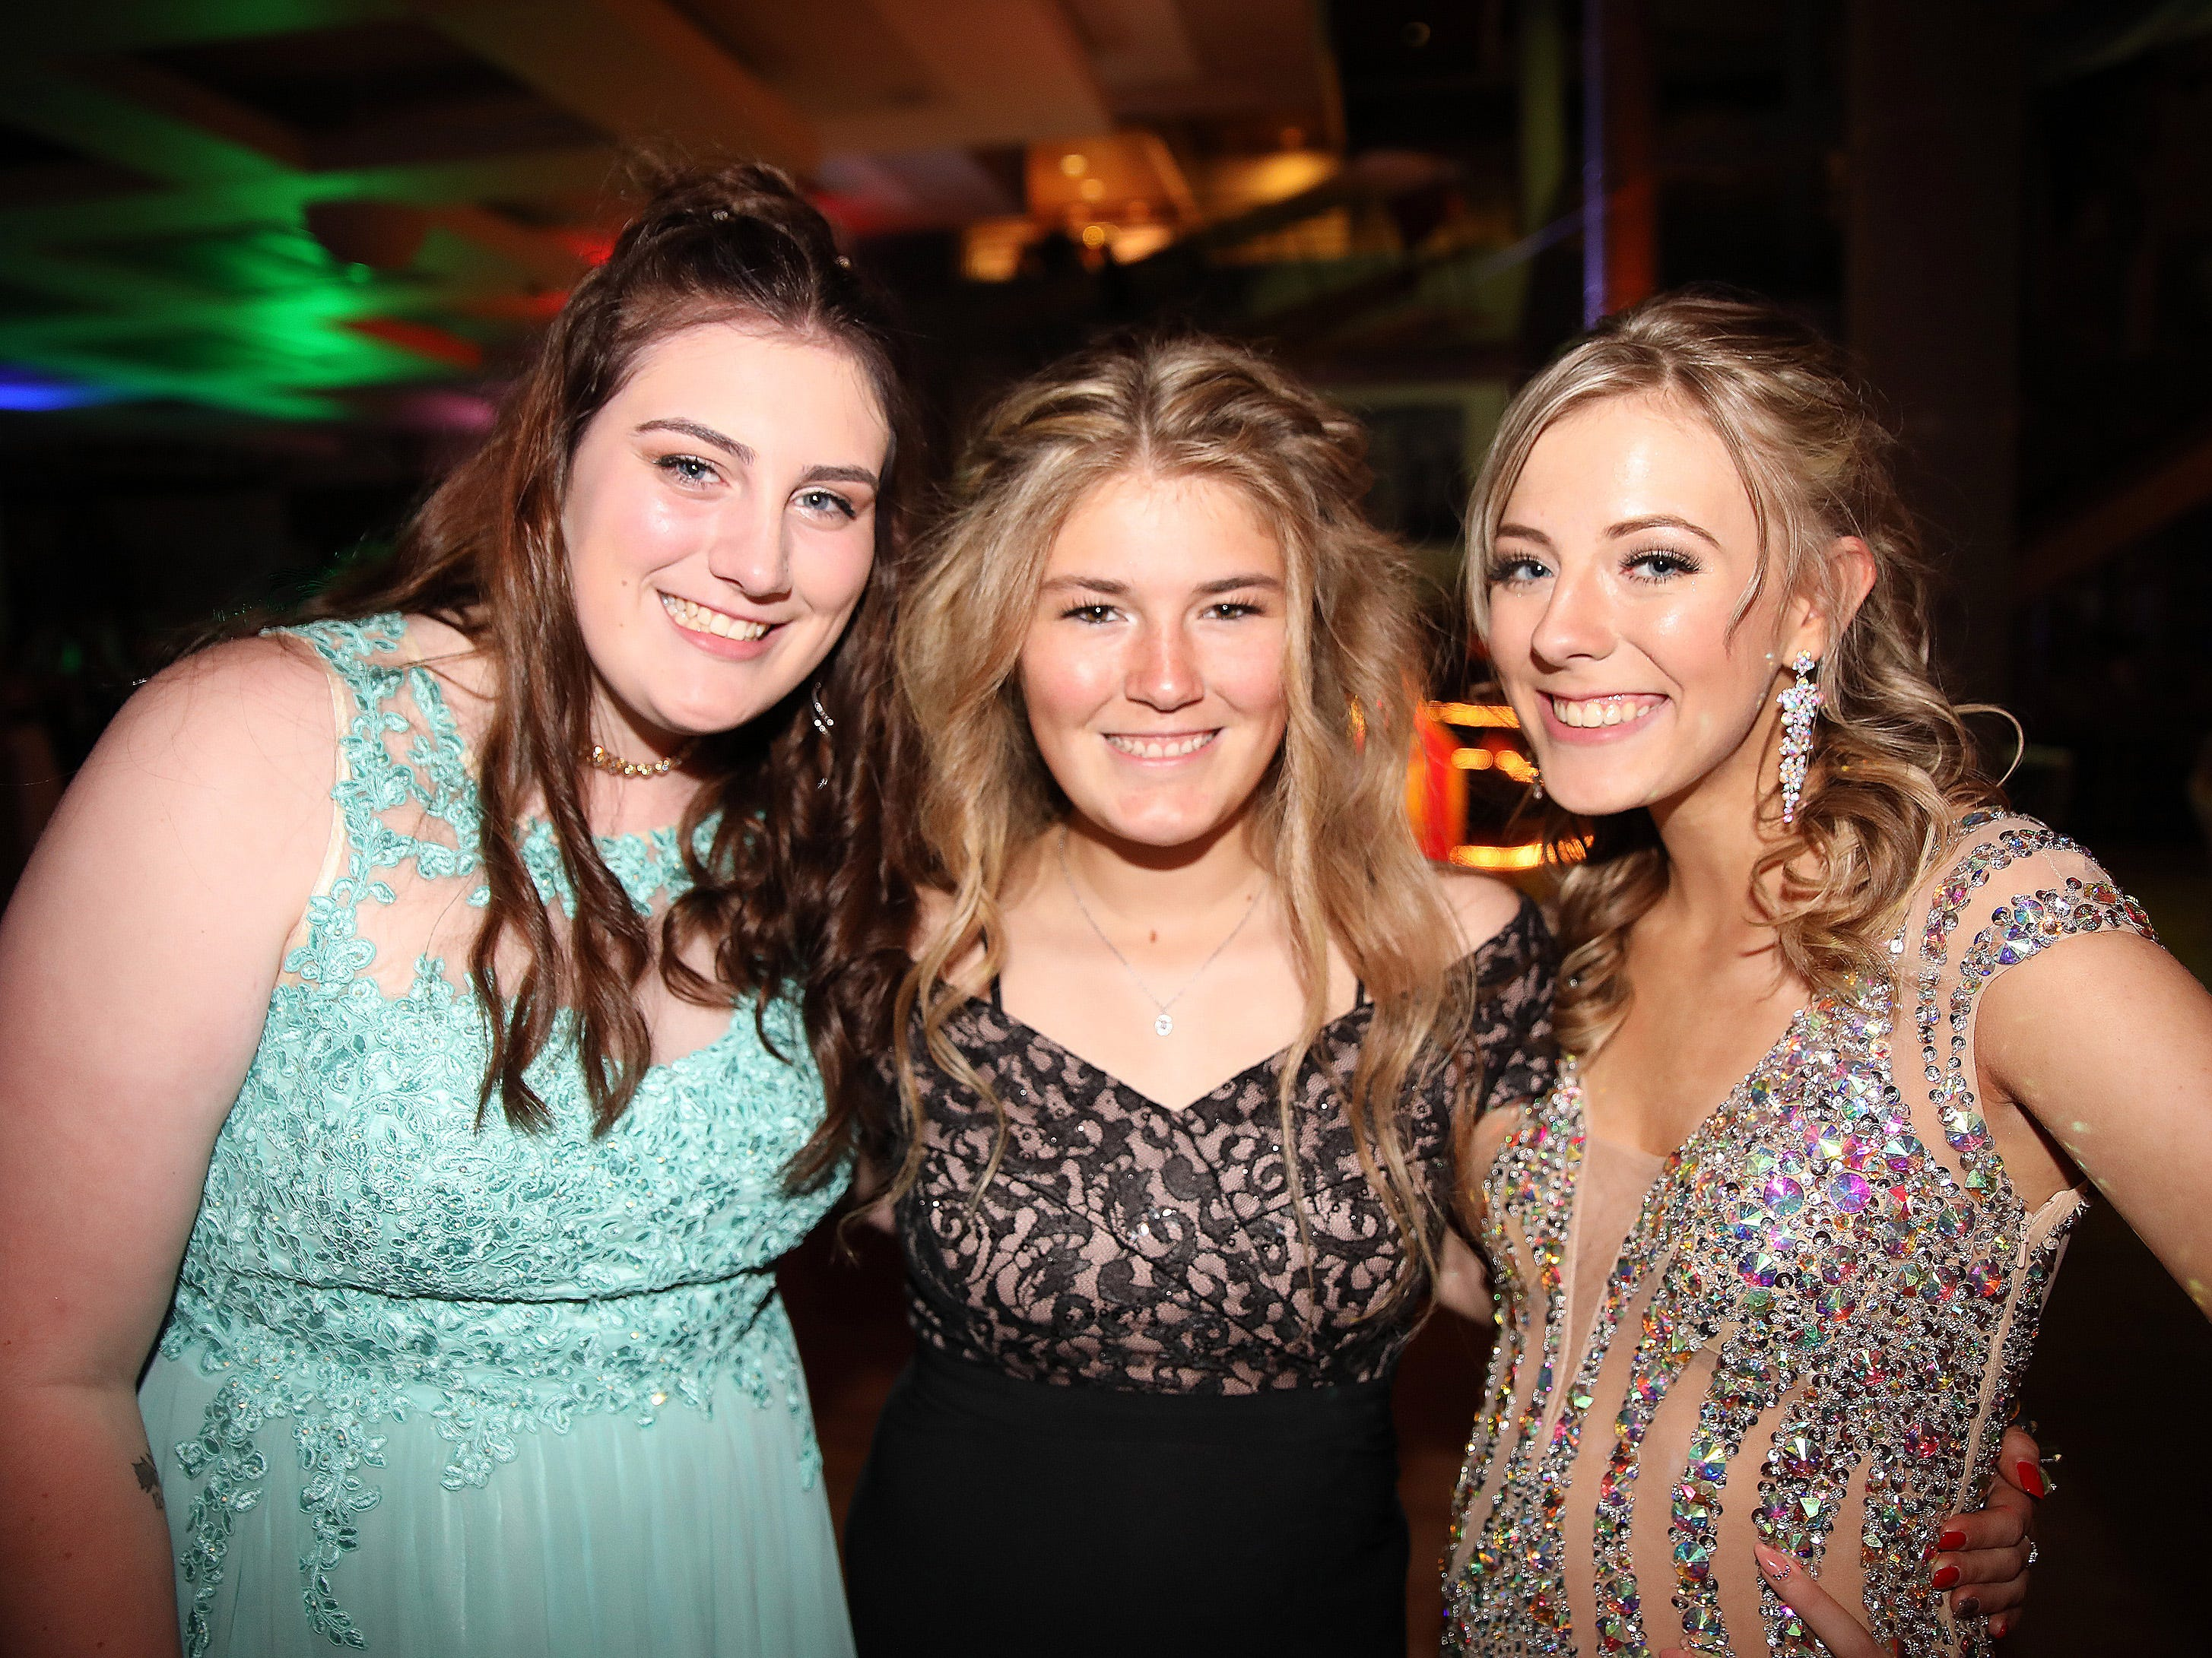 (left to right) Seniors Samantha Miller, Claire Crees, and Macayla Rhodes attend the circus-themed Urbandale High School Junior/Senior Prom Spectacular at the State Historical Building in Des Moines on Saturday, April 11, 2019.  The post-prom event is held at school right after the dance from 11 p.m. to 4:30 a.m. with food, prizes, a hypnotist, inflatables, and casino games.